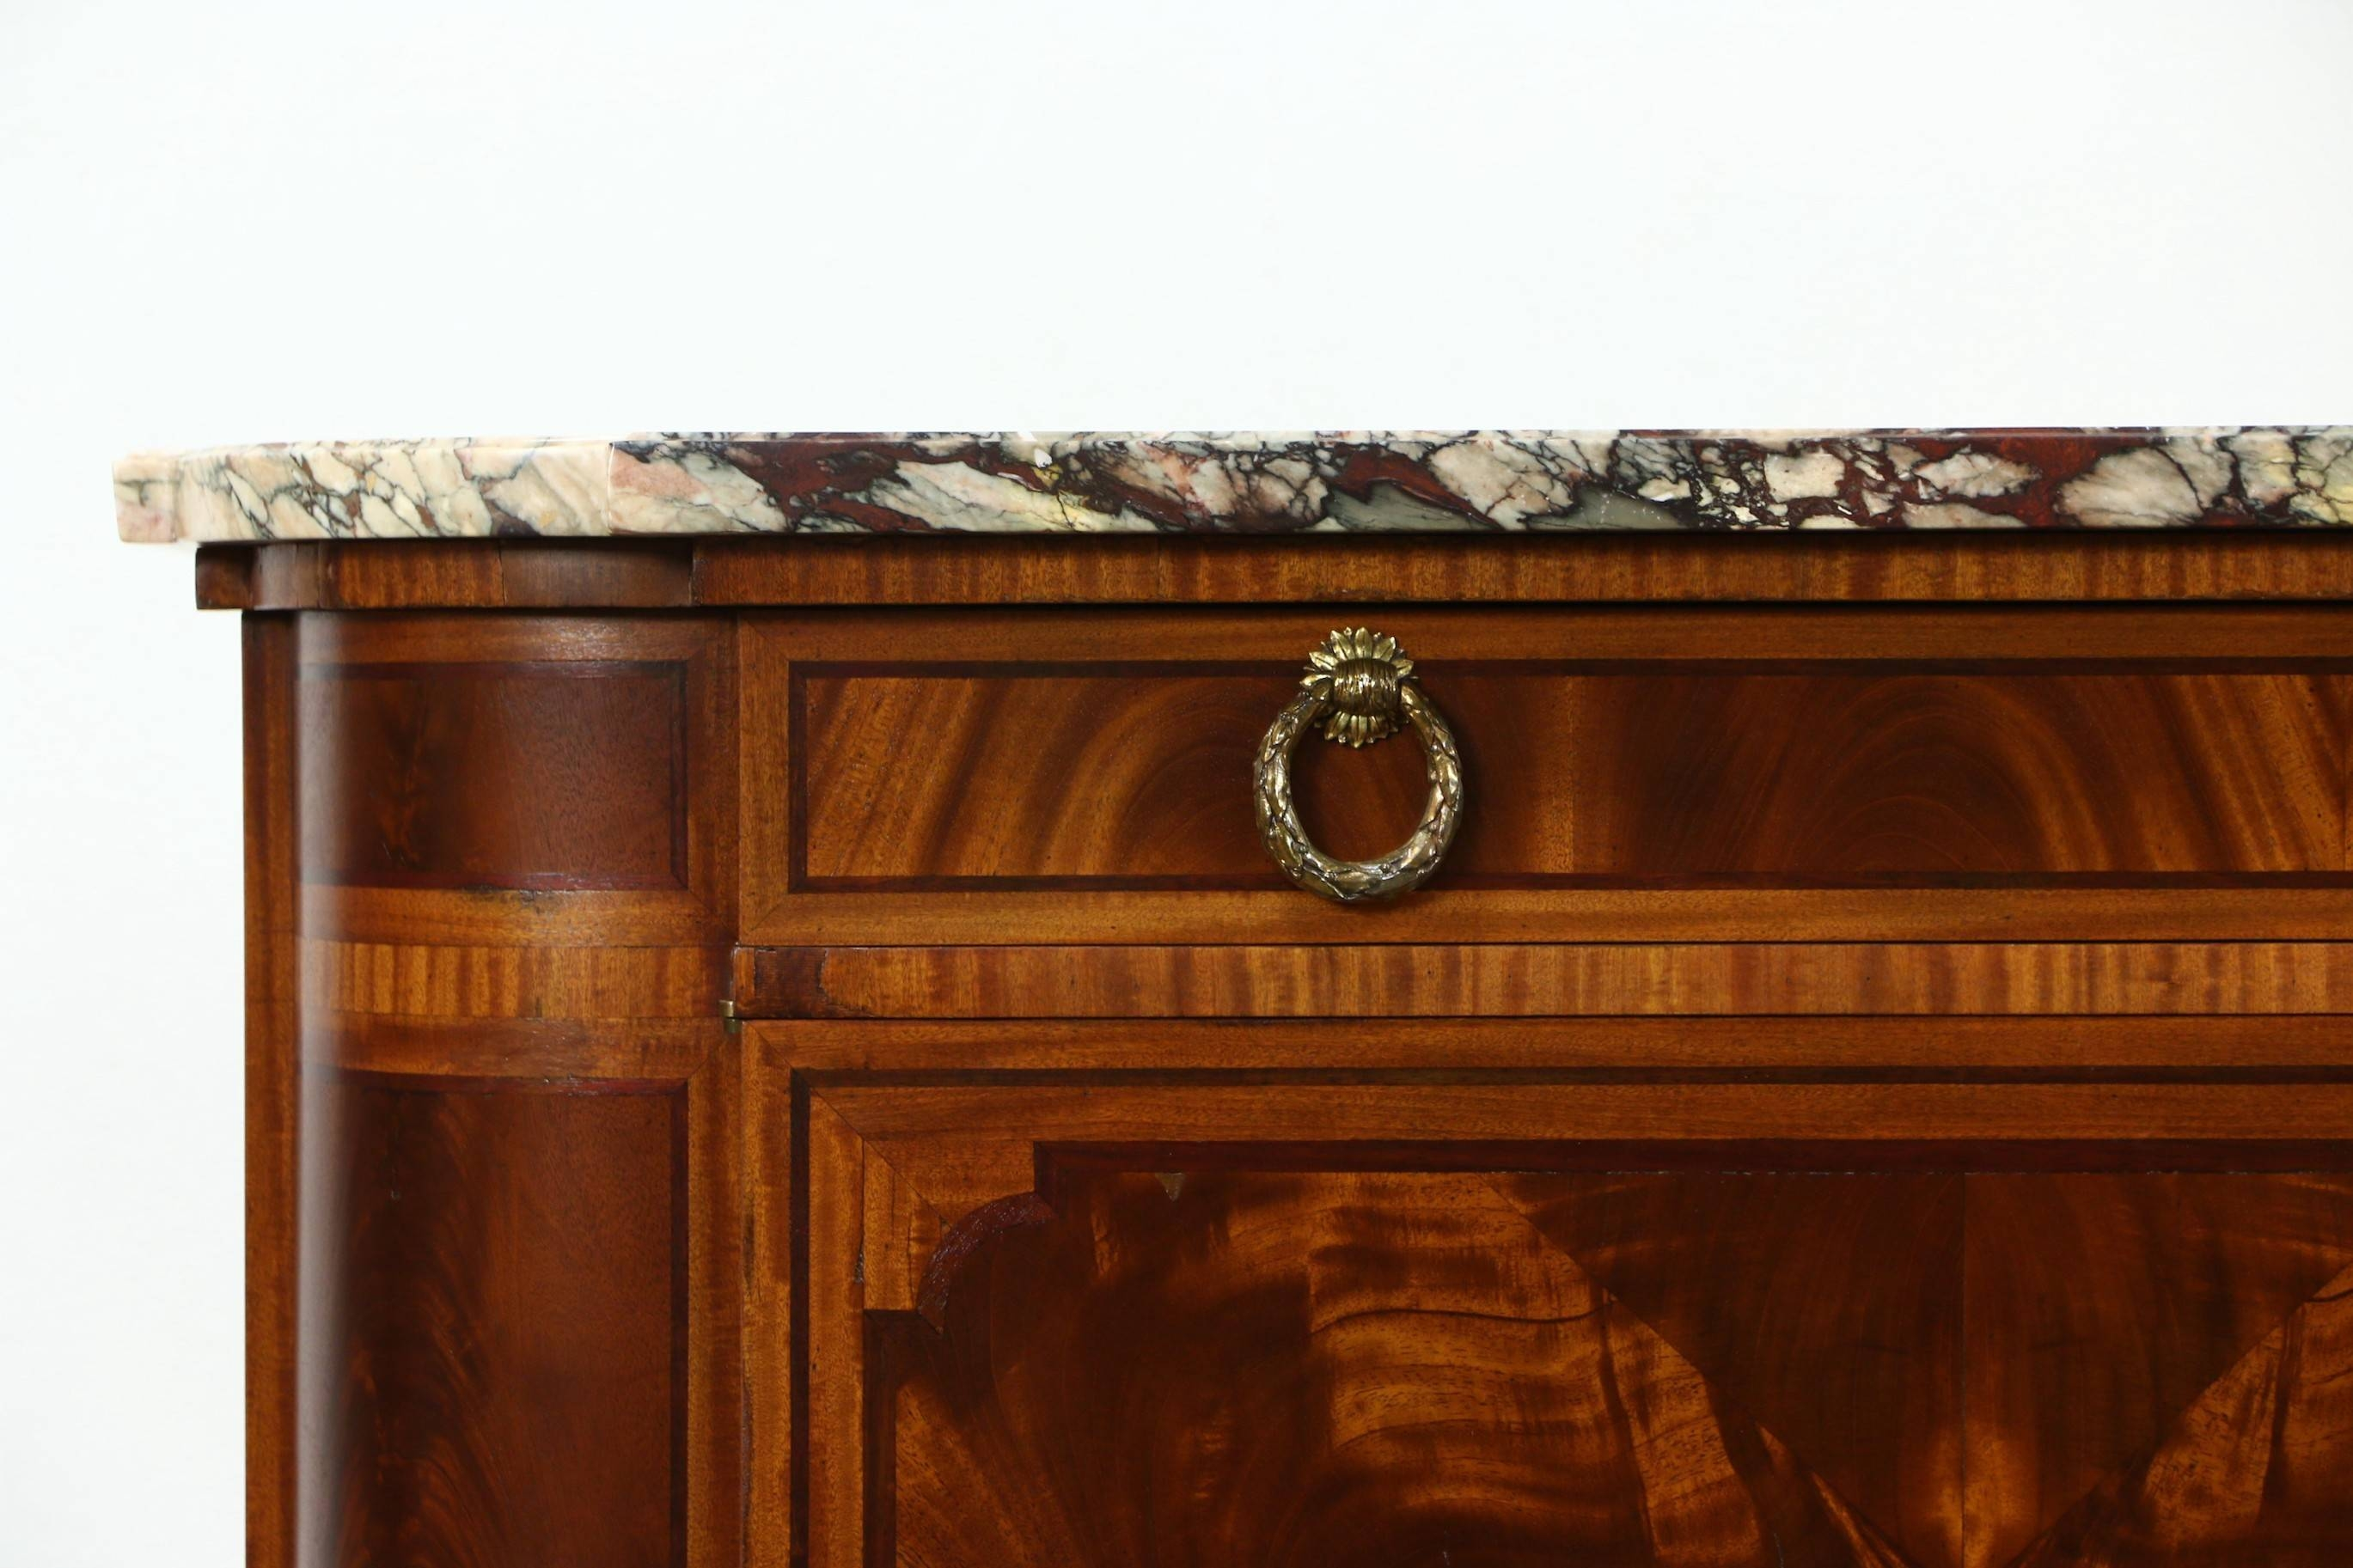 Sold – Marble Top Paris France Signed 1930 Vintage Sideboard Intended For Most Recently Released Antique Marble Top Sideboards (#13 of 15)